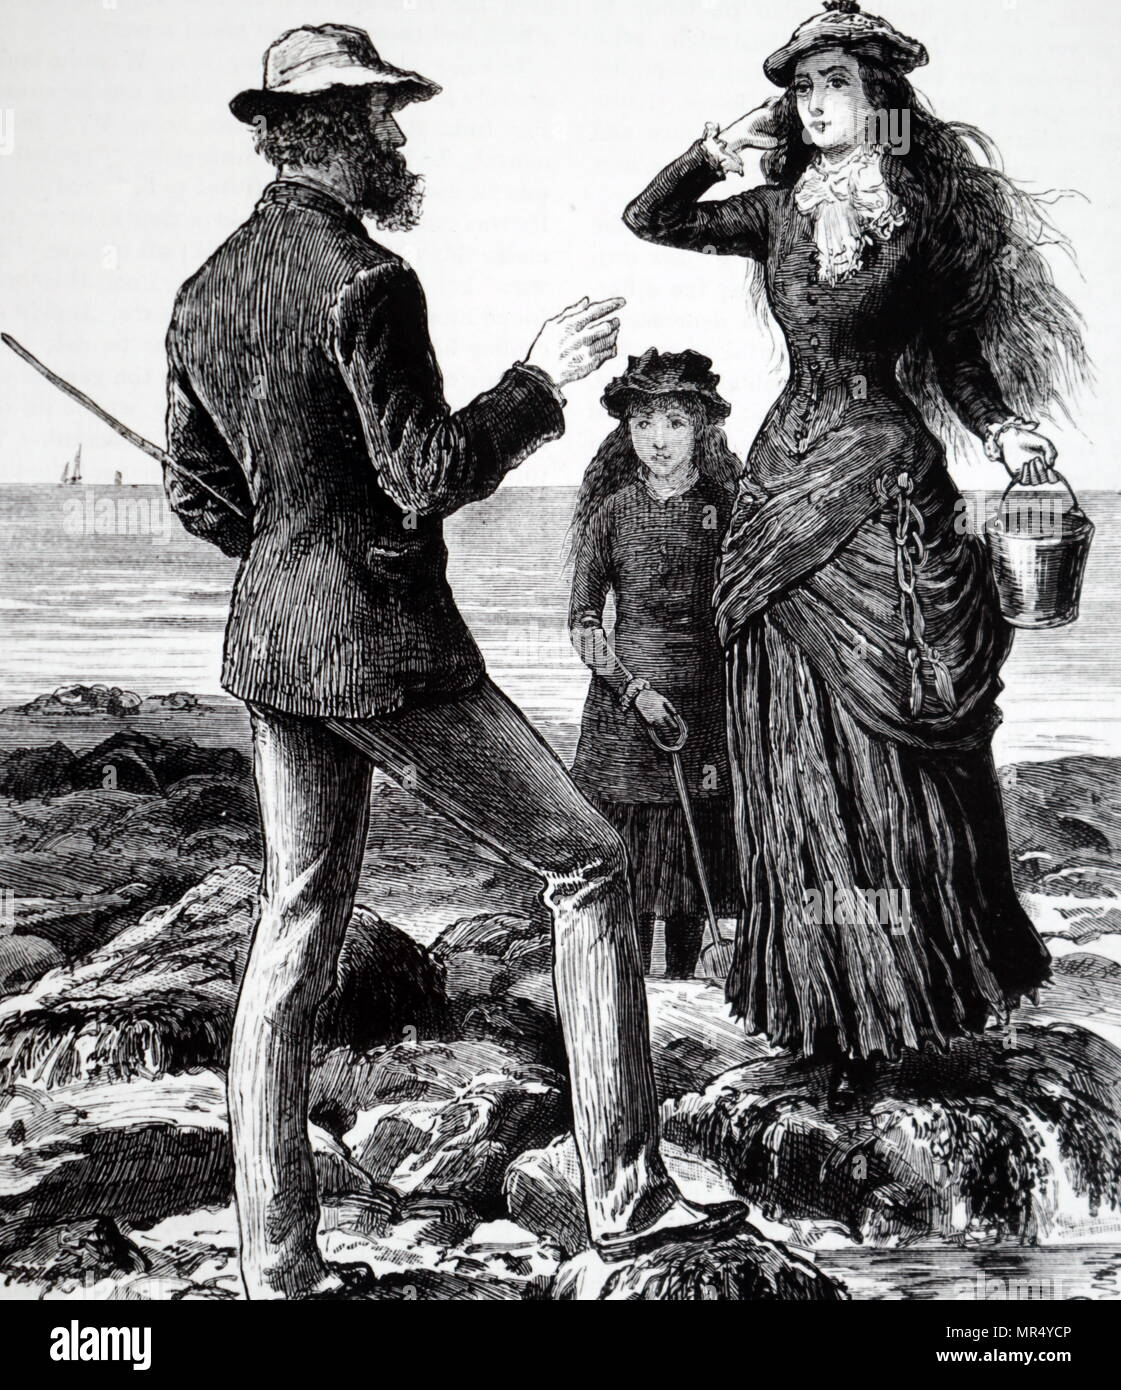 Illustration titled 'Seaside Holiday' depicts a young upper-class mother and daughter speaking with a local man as they stand on the beach with a bucket and spade. Illustrated by Frank Dadd (1851-1929) a British artist and illustrator. Dated 19th century - Stock Image